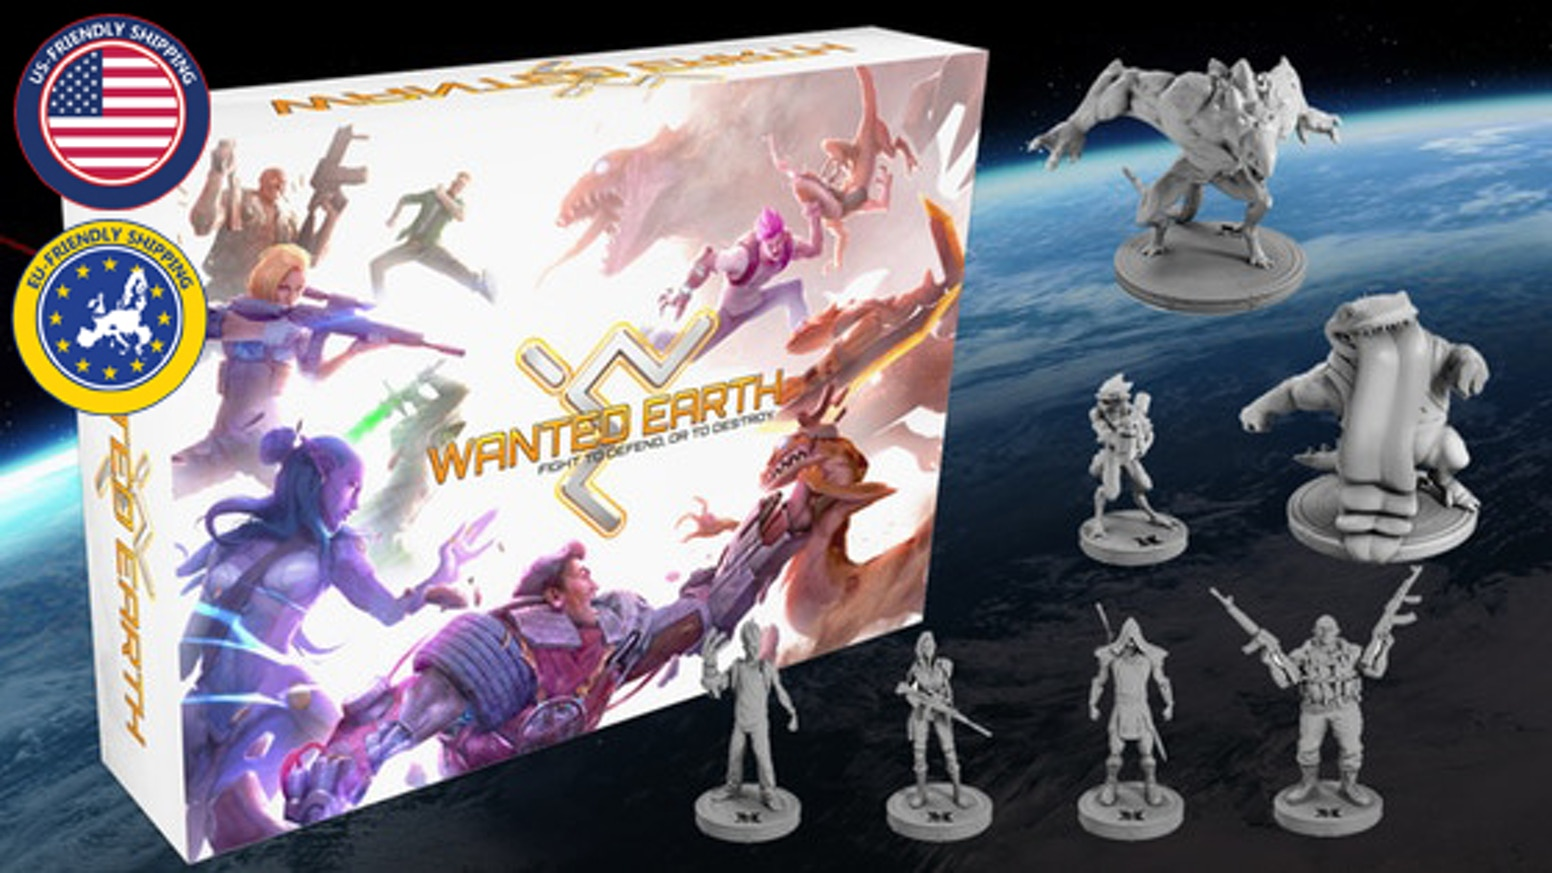 A board game for 1-7 players. Play as heroes defending Earth or aliens trying to take it over!  Co-op/PVP/single player. W/ comic book!